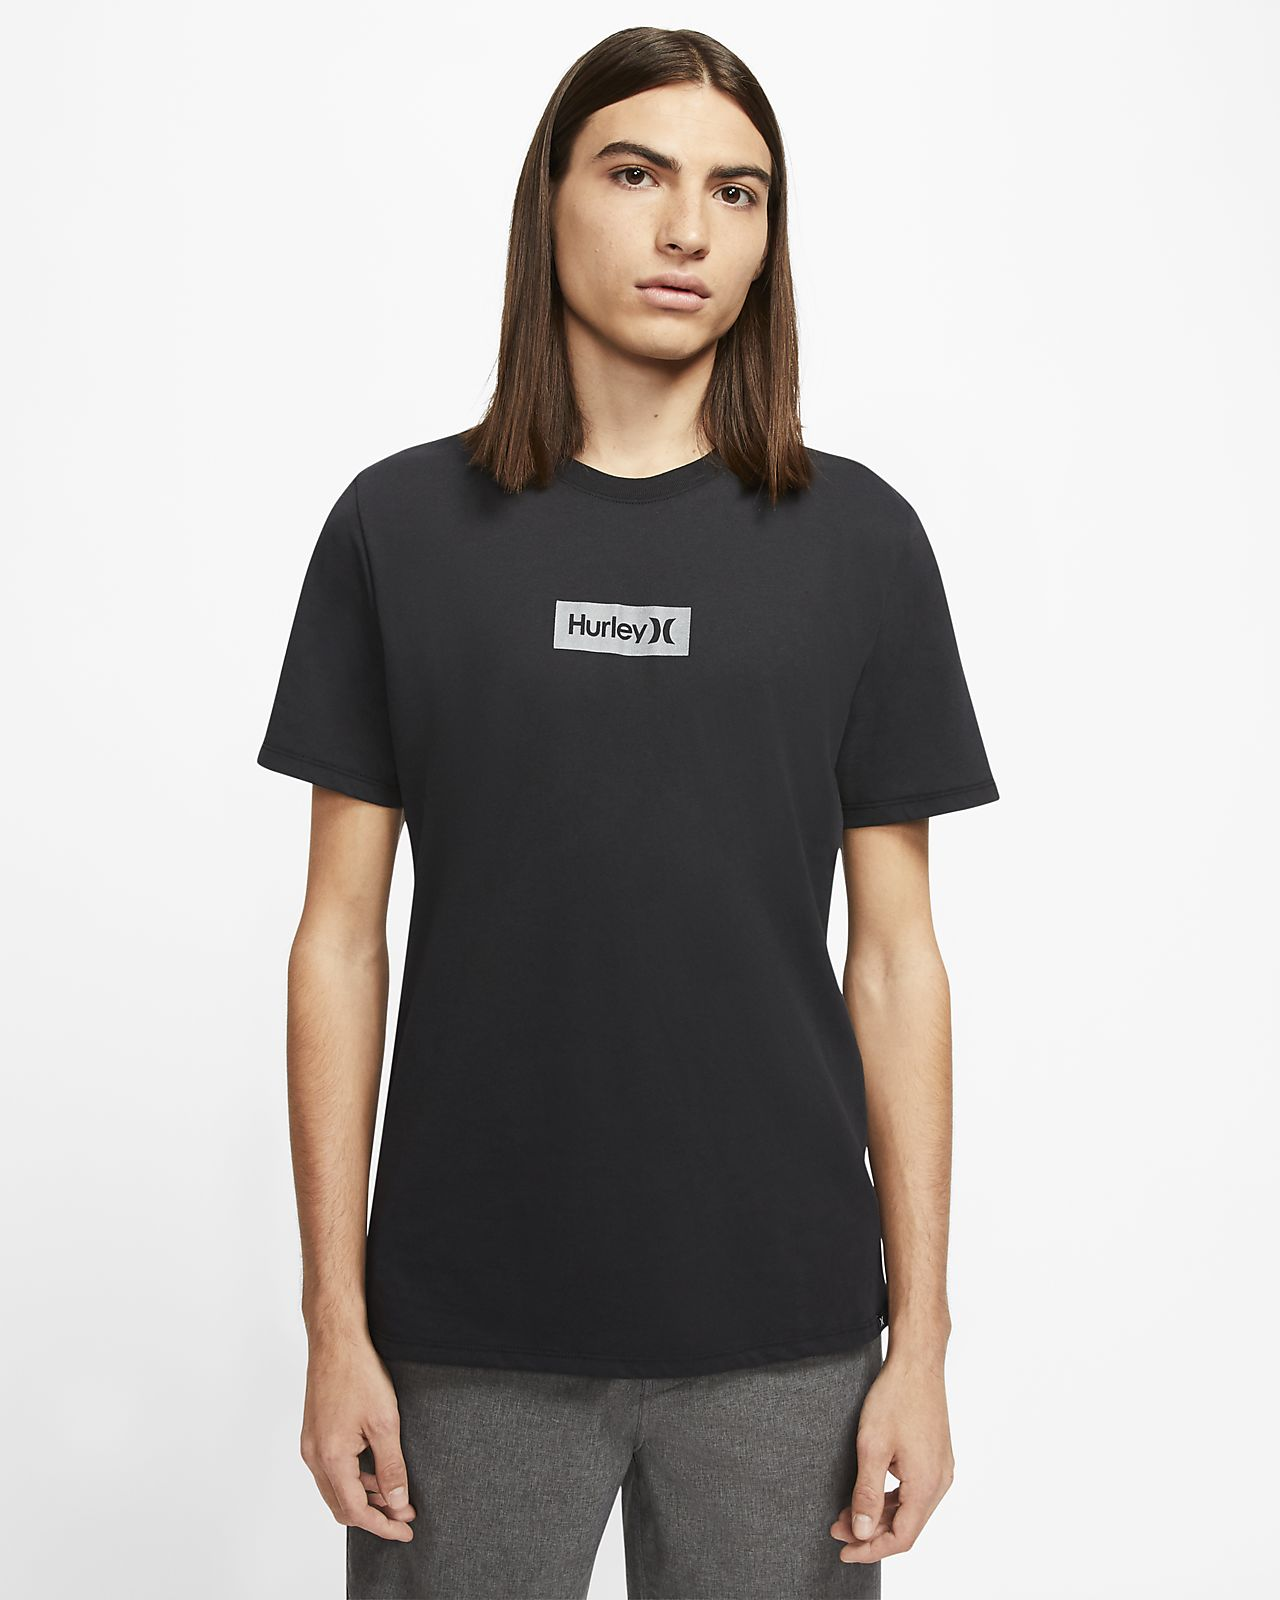 Hurley Dri-FIT One And Only Small Box Reflective Men's T-Shirt